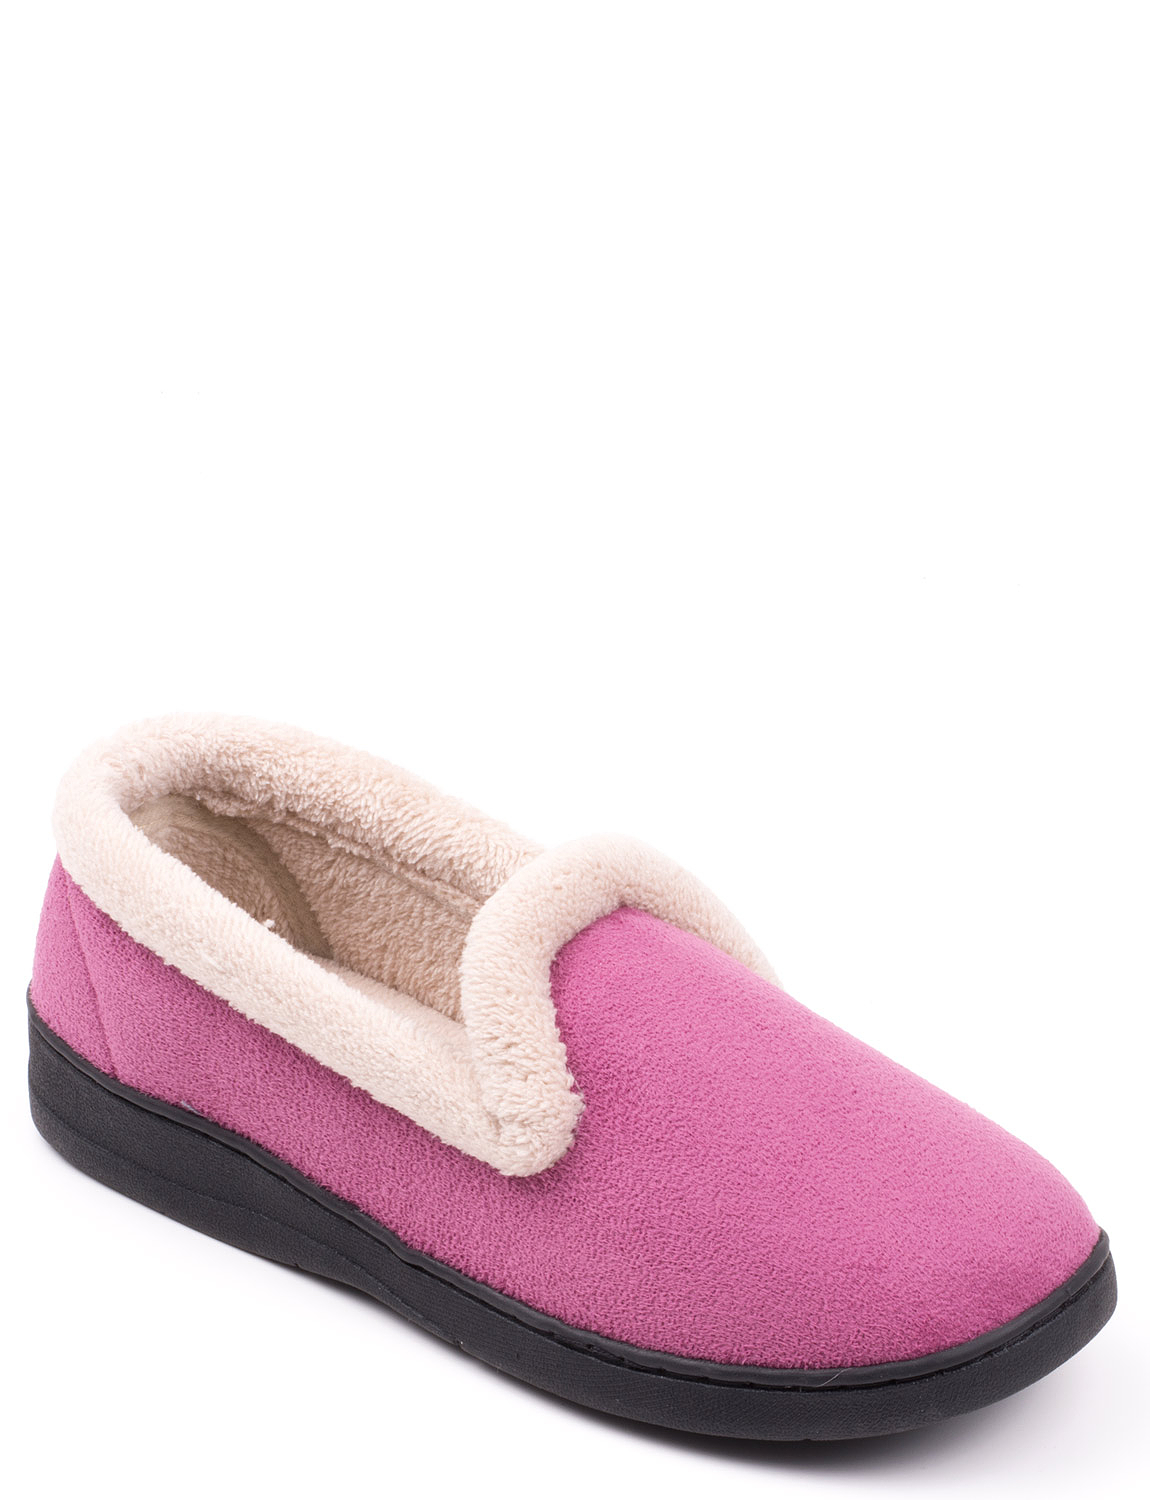 4057d02ec26f Velour Fleece Lined Slippers. Tap to expand